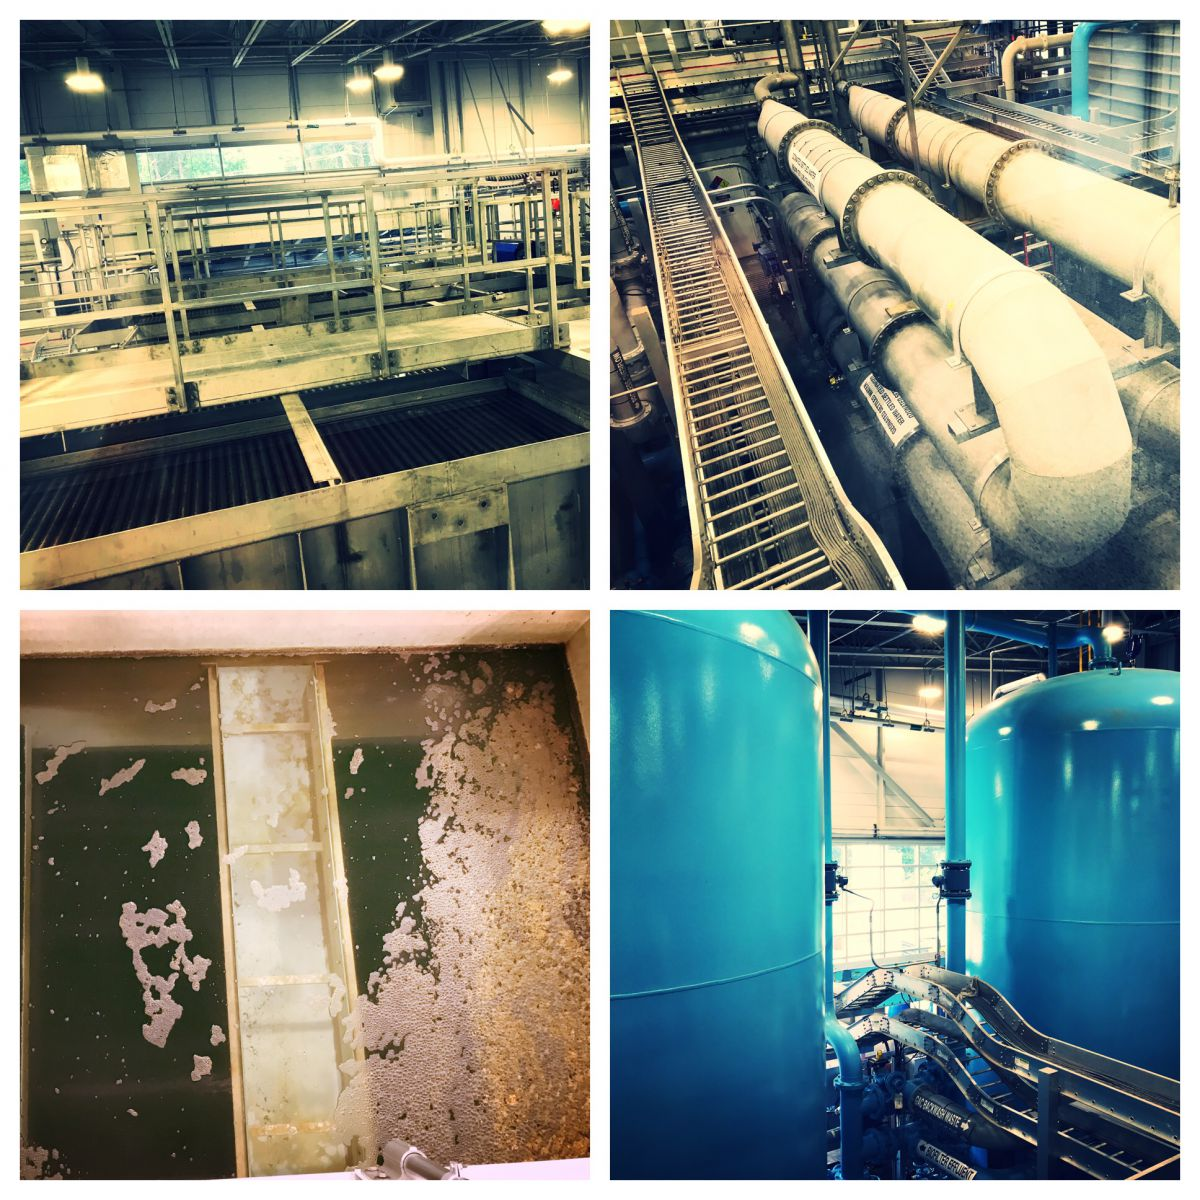 Flocculation and sedimentation in water reuse for organics removal